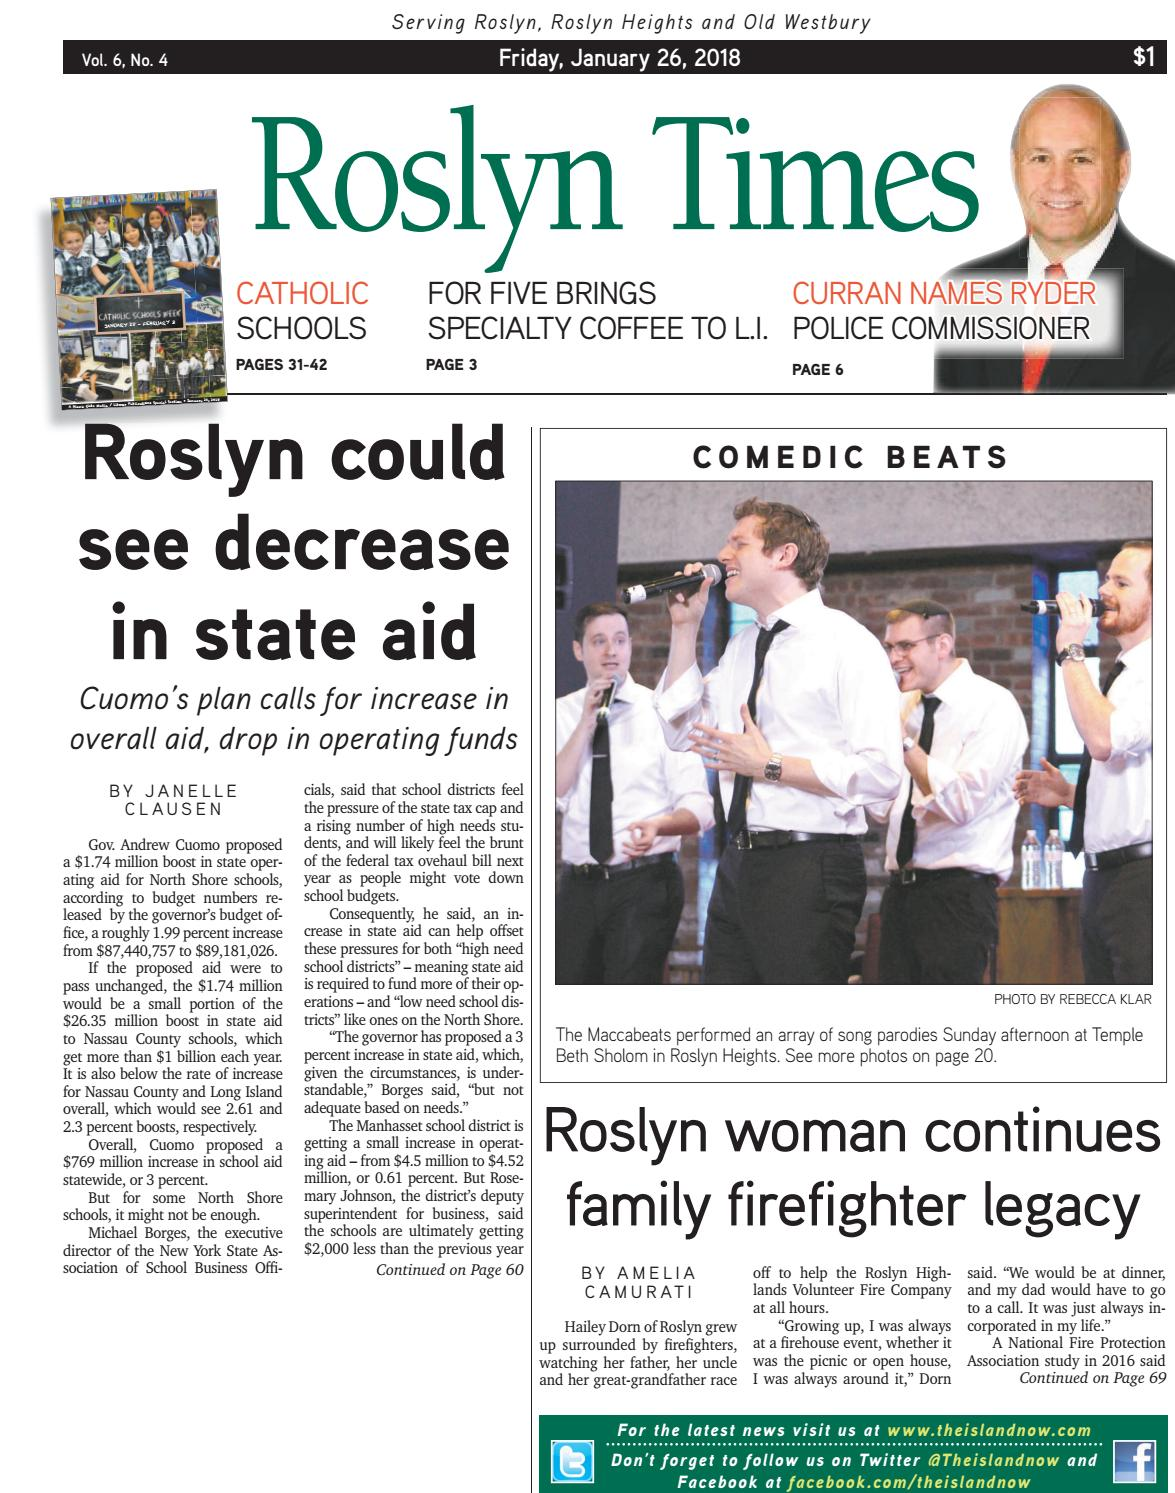 Roslyn 2018 01 26 by The Island Now - issuu